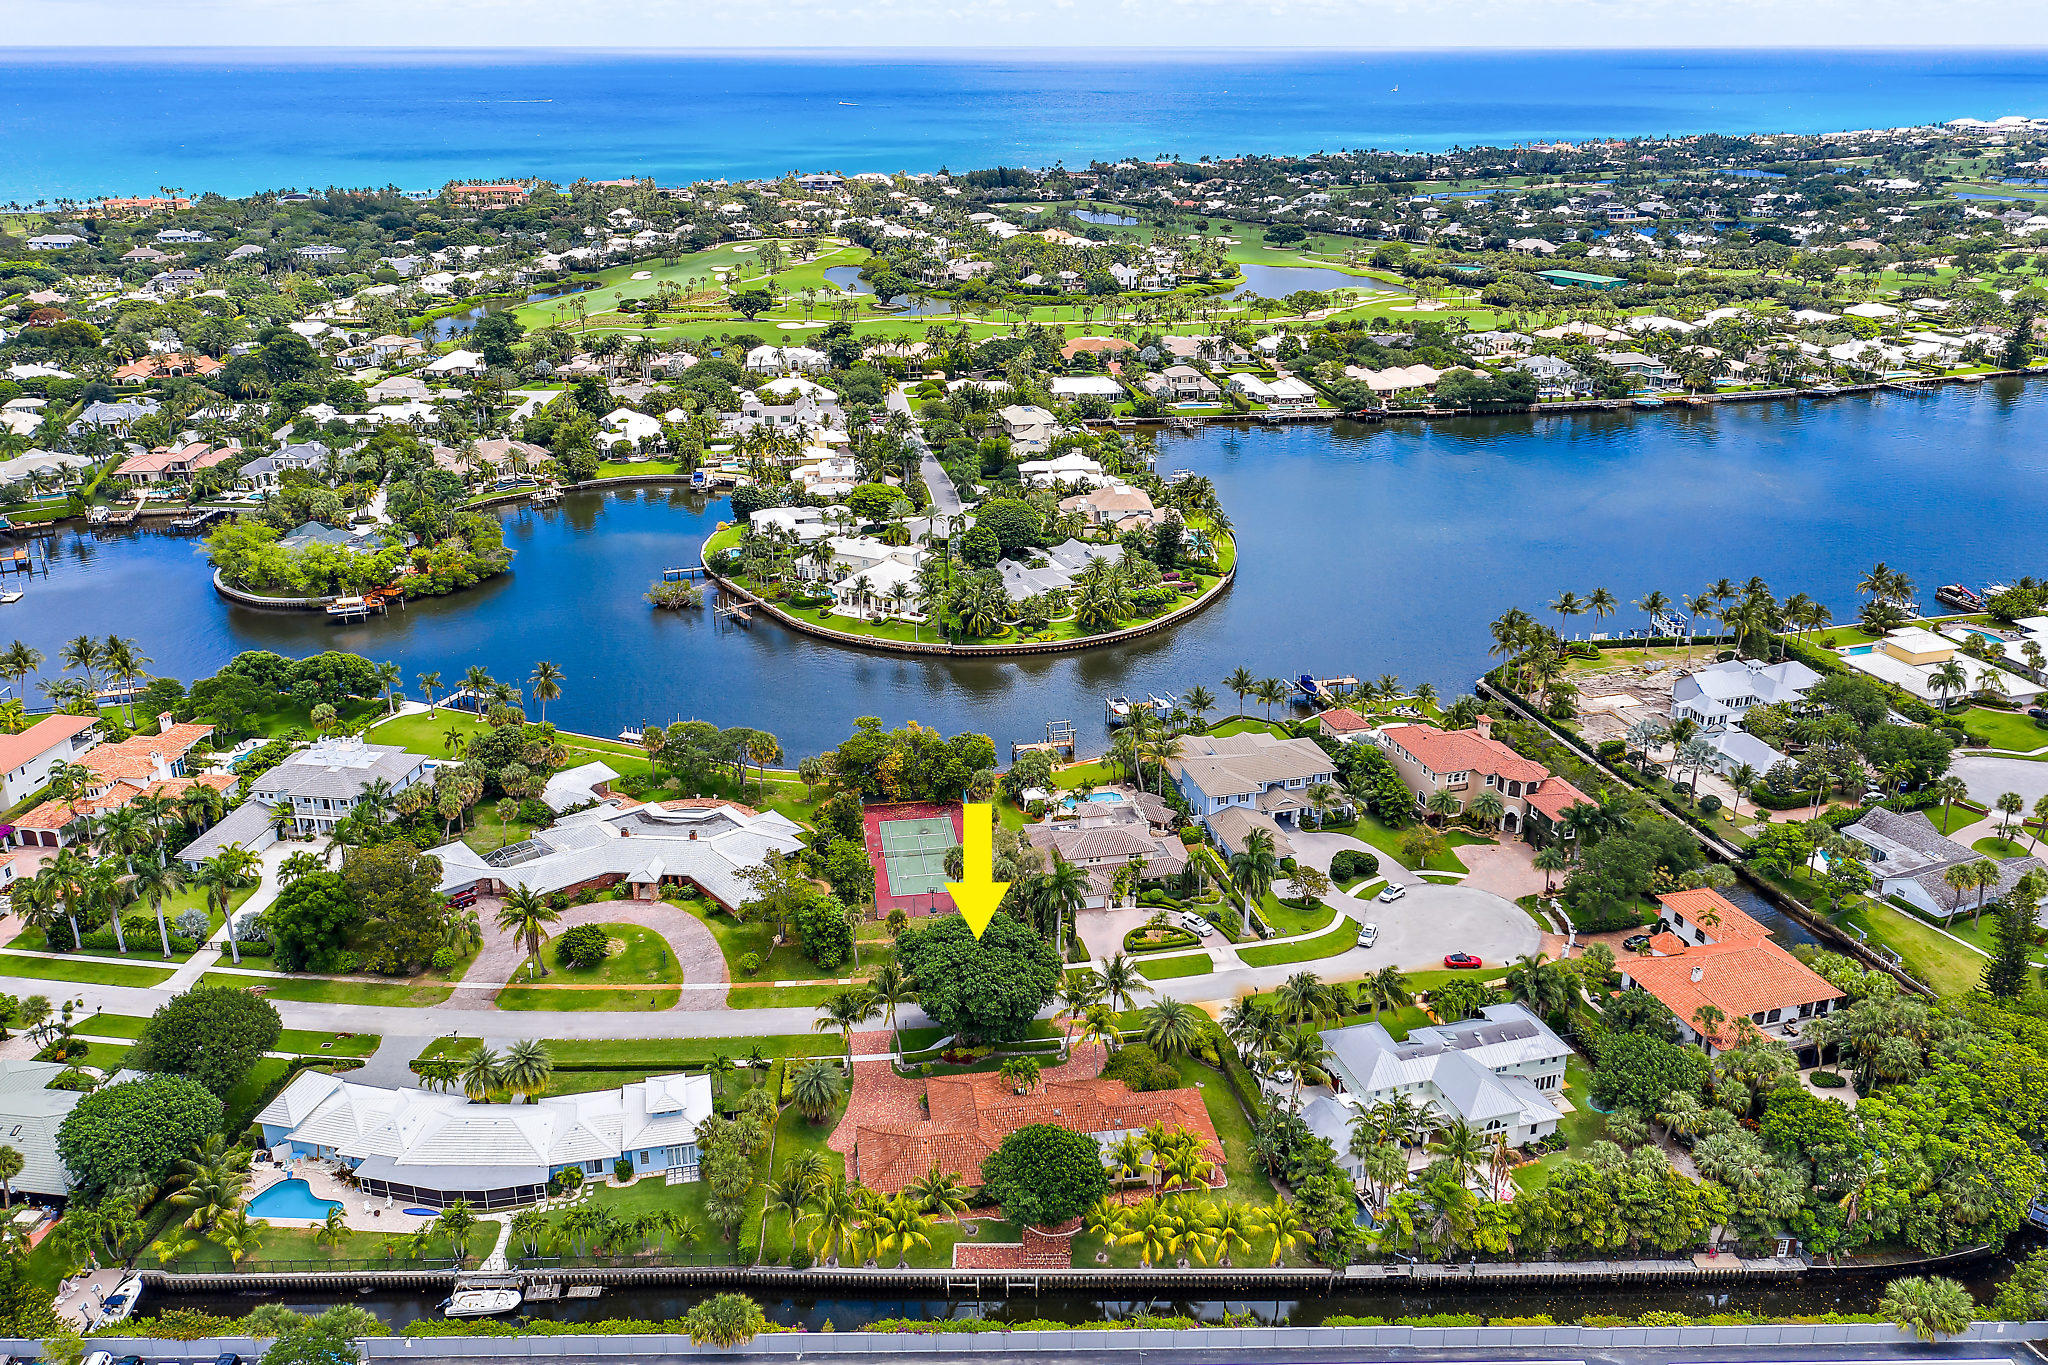 12071 Captains Landing(s), North Palm Beach, Florida 33408, 4 Bedrooms Bedrooms, ,2.2 BathroomsBathrooms,A,Single family,Captains,RX-10523258